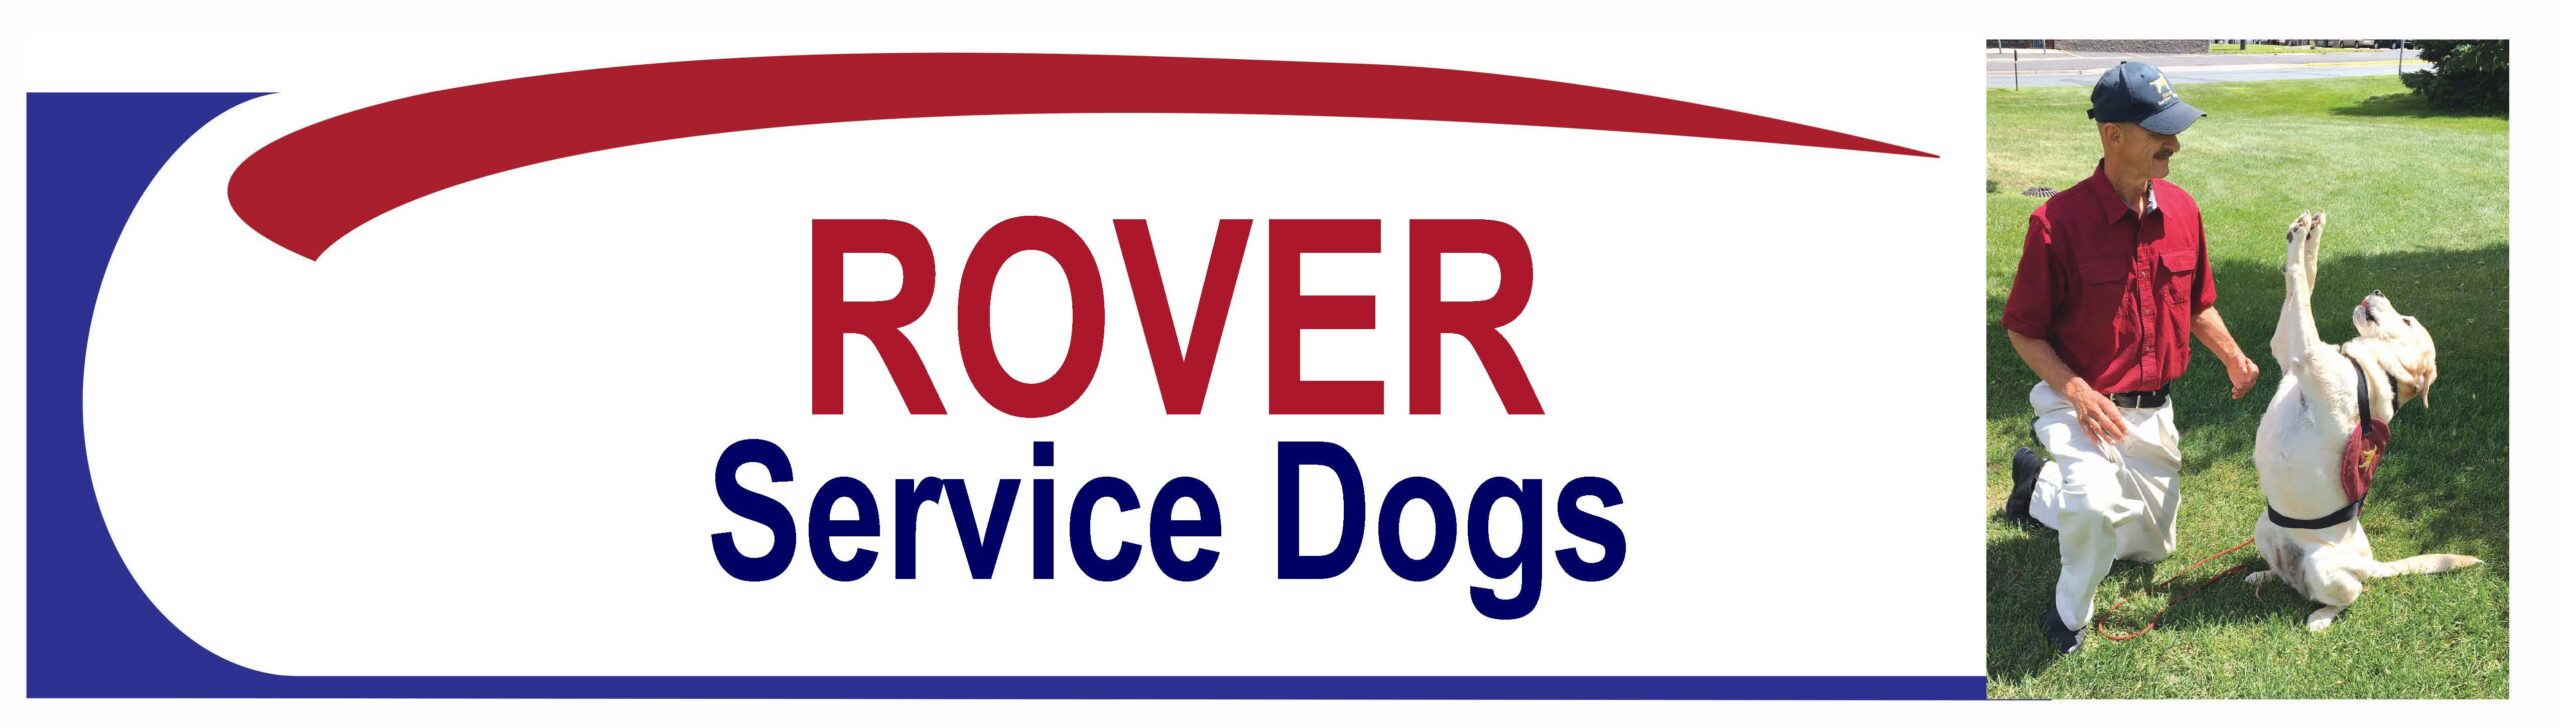 Rover Service Dogs